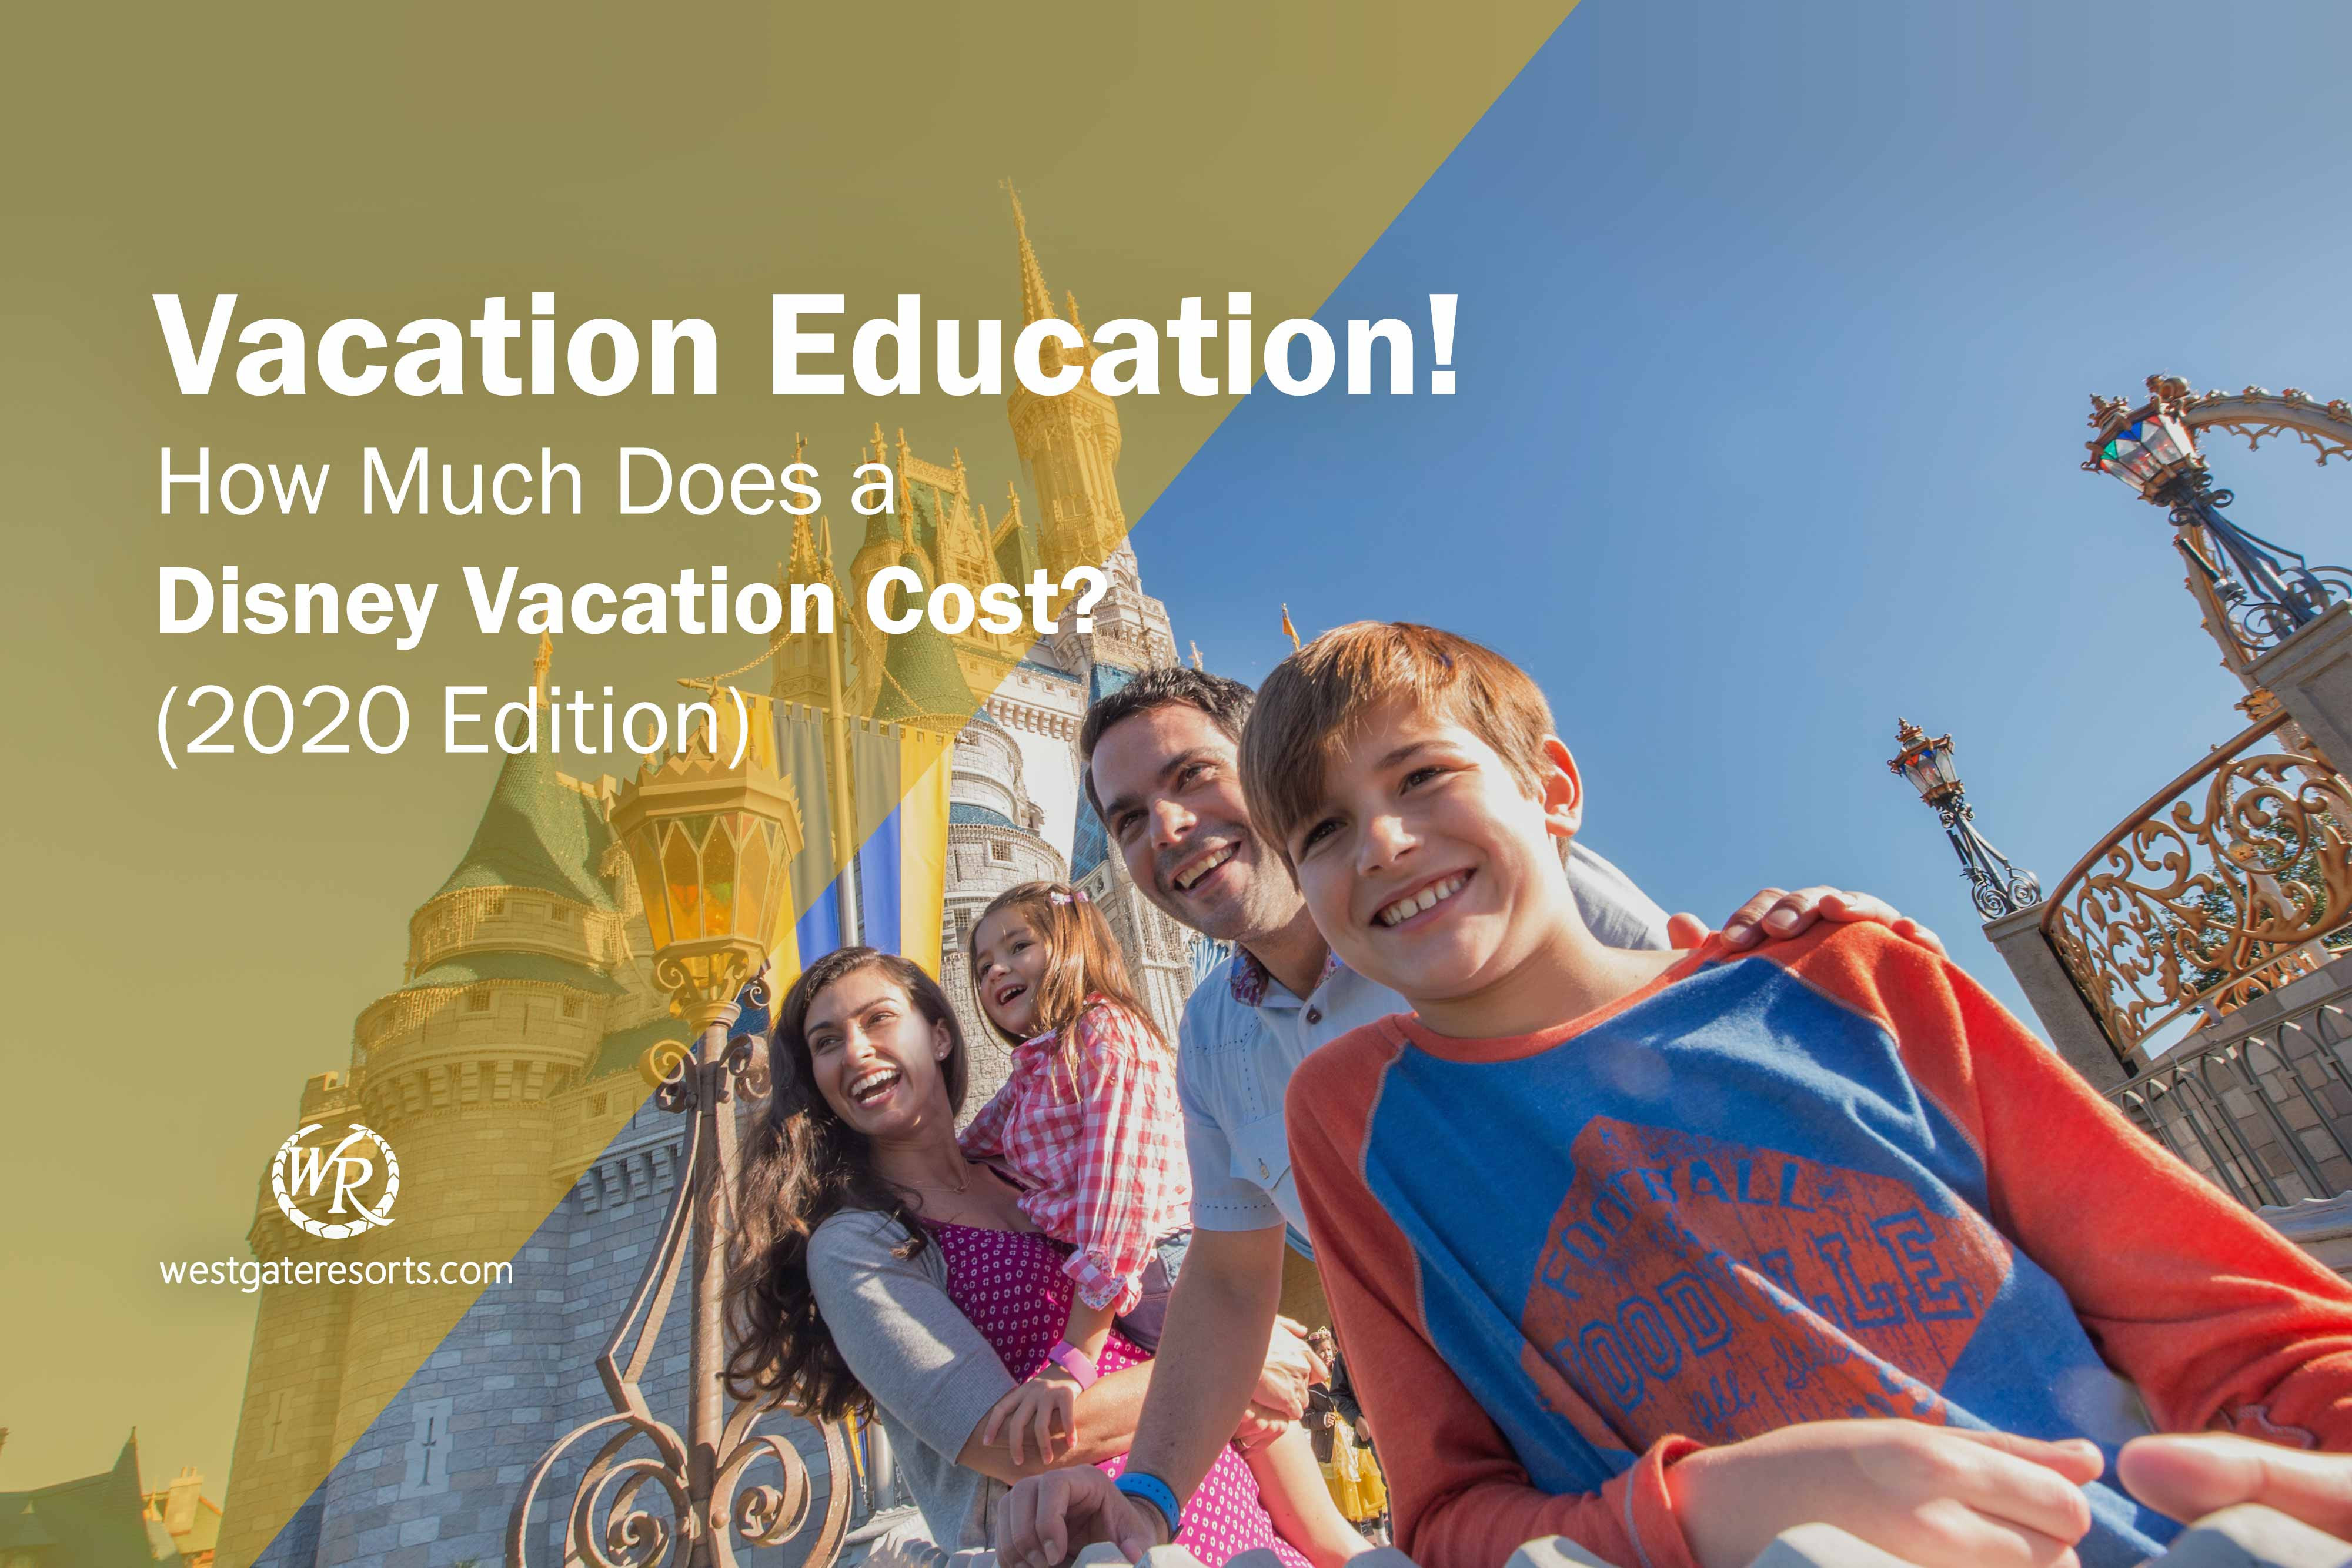 Vacation Education! How Much Does a Disney Vacation Cost (2020 Edition)?